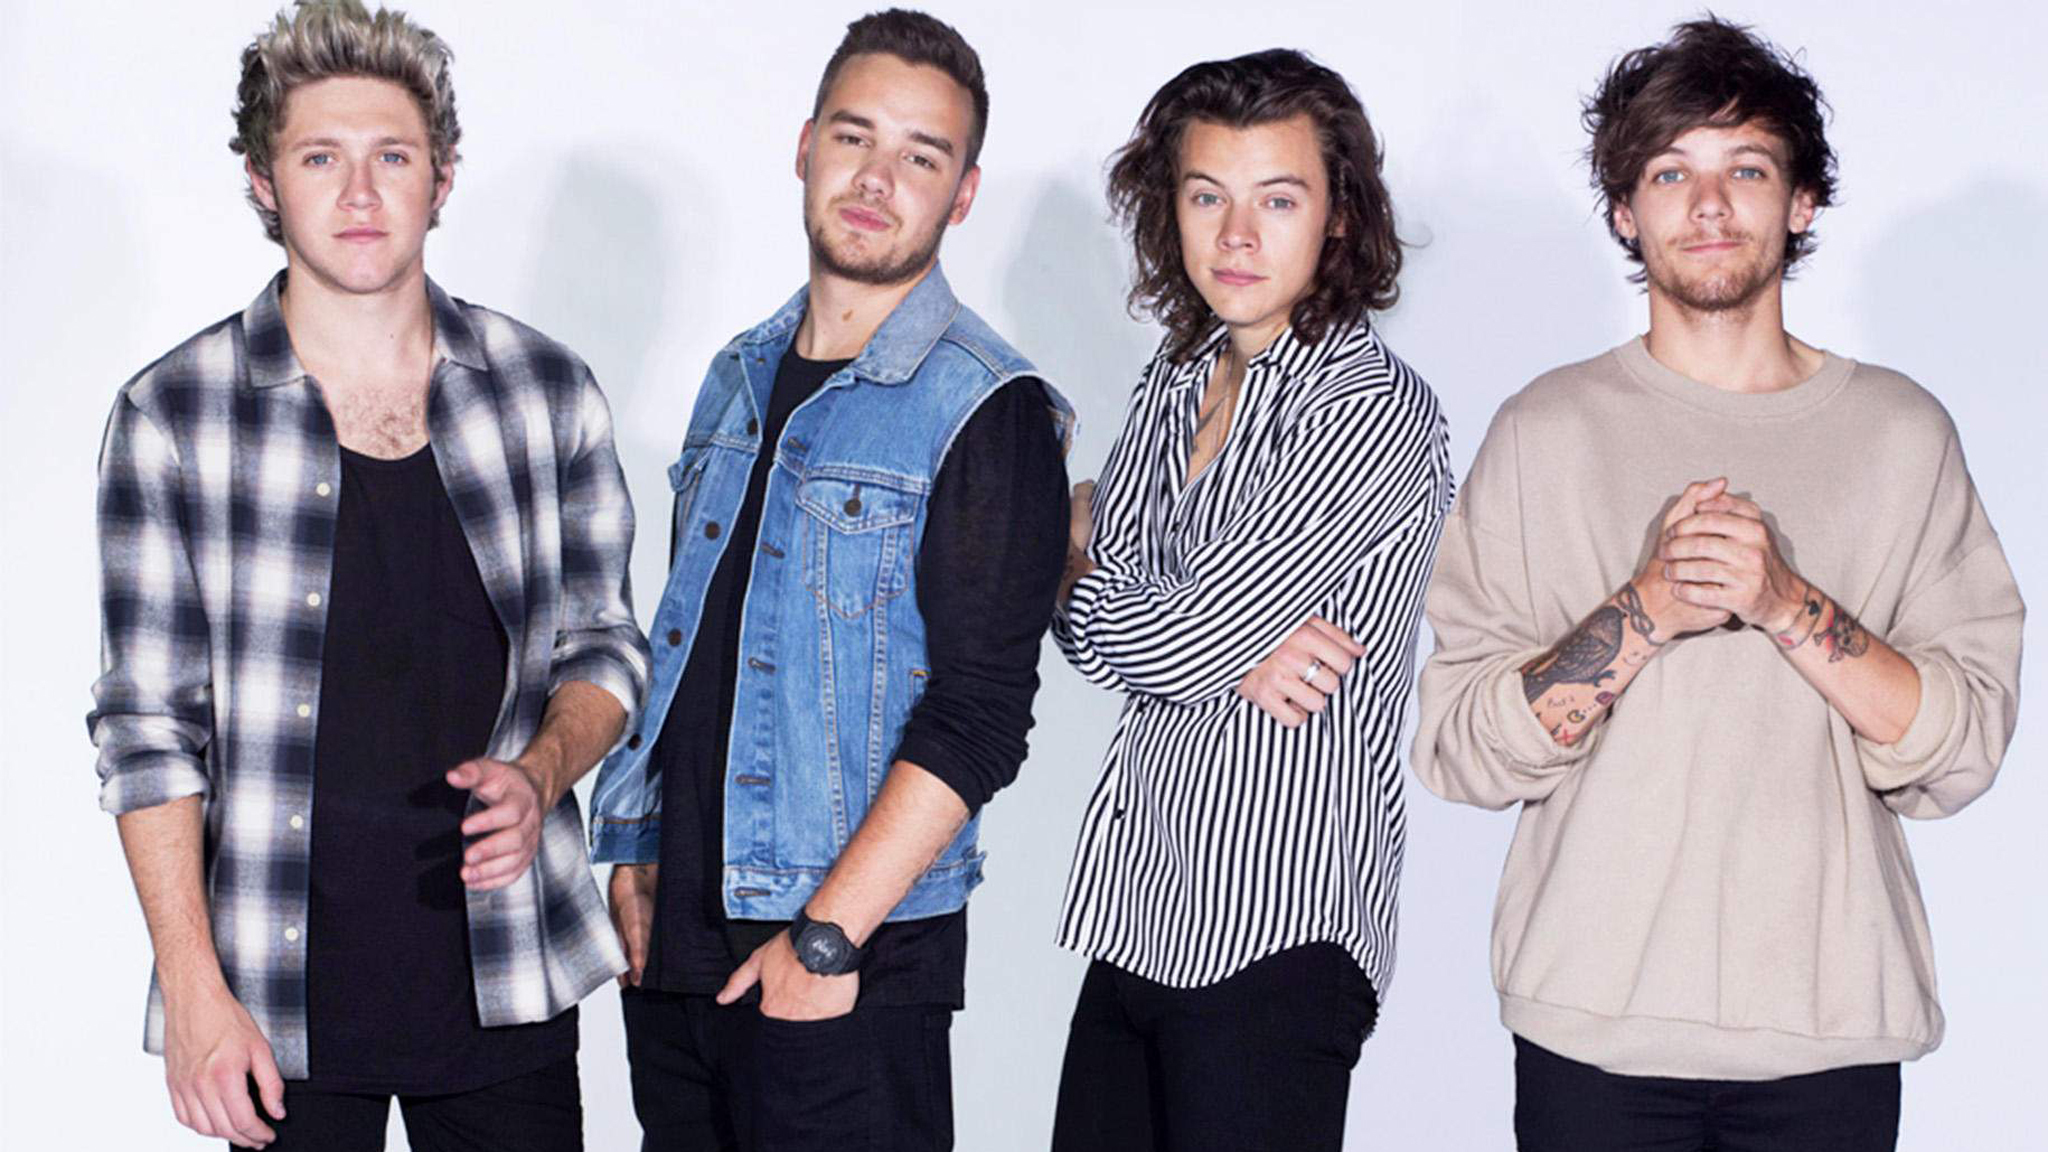 The 20 best One Direction songs